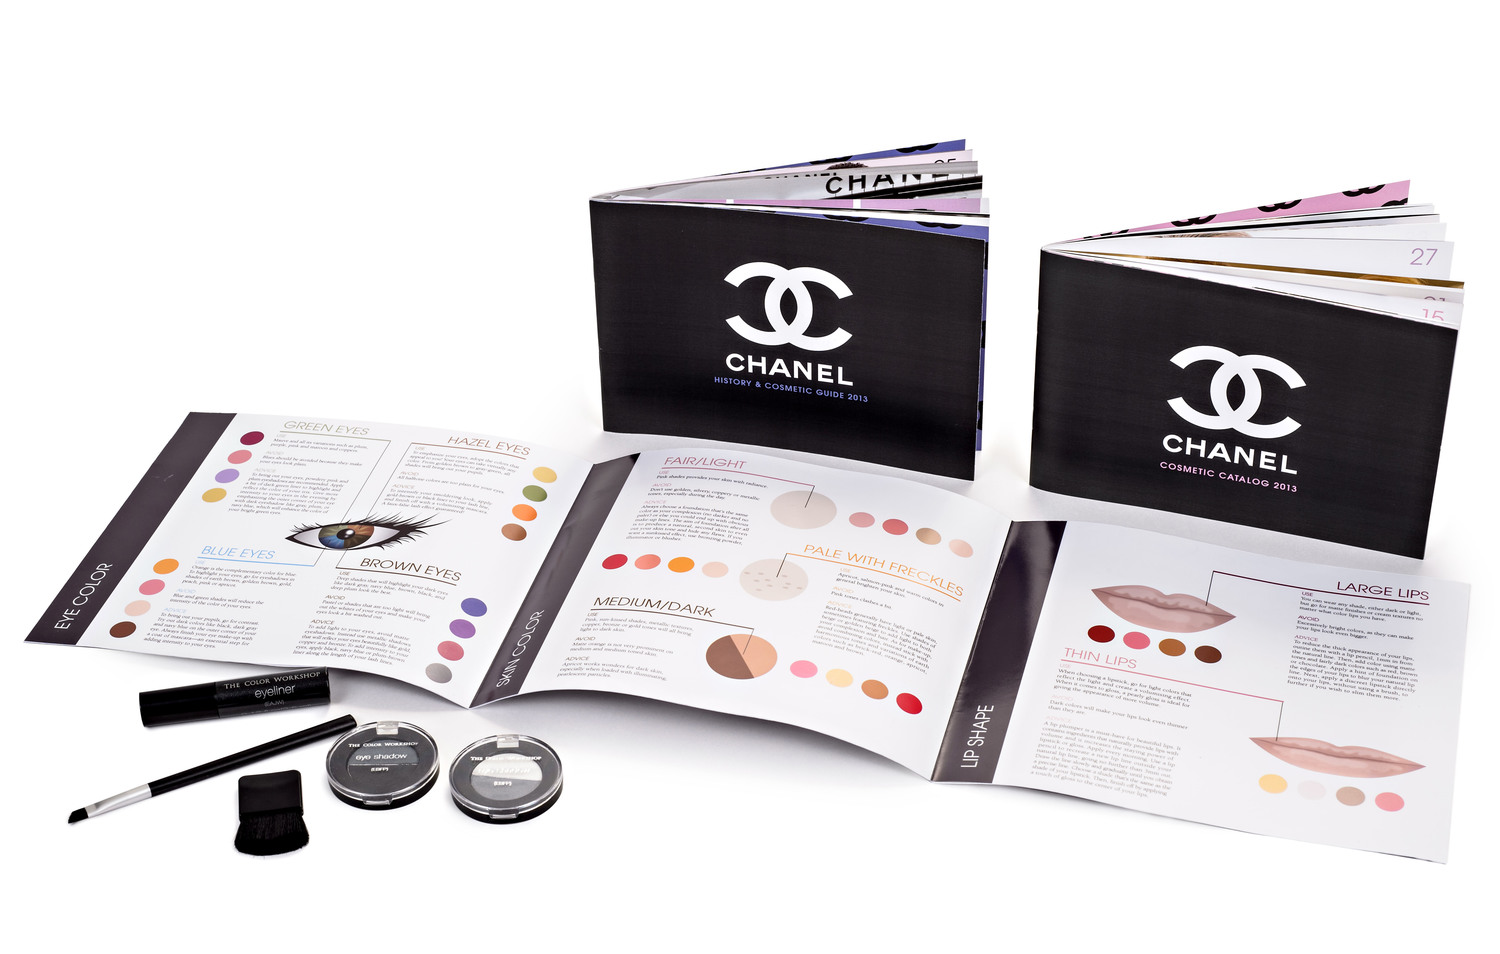 Chanel Cosmetics Rebecca Ulsh Design